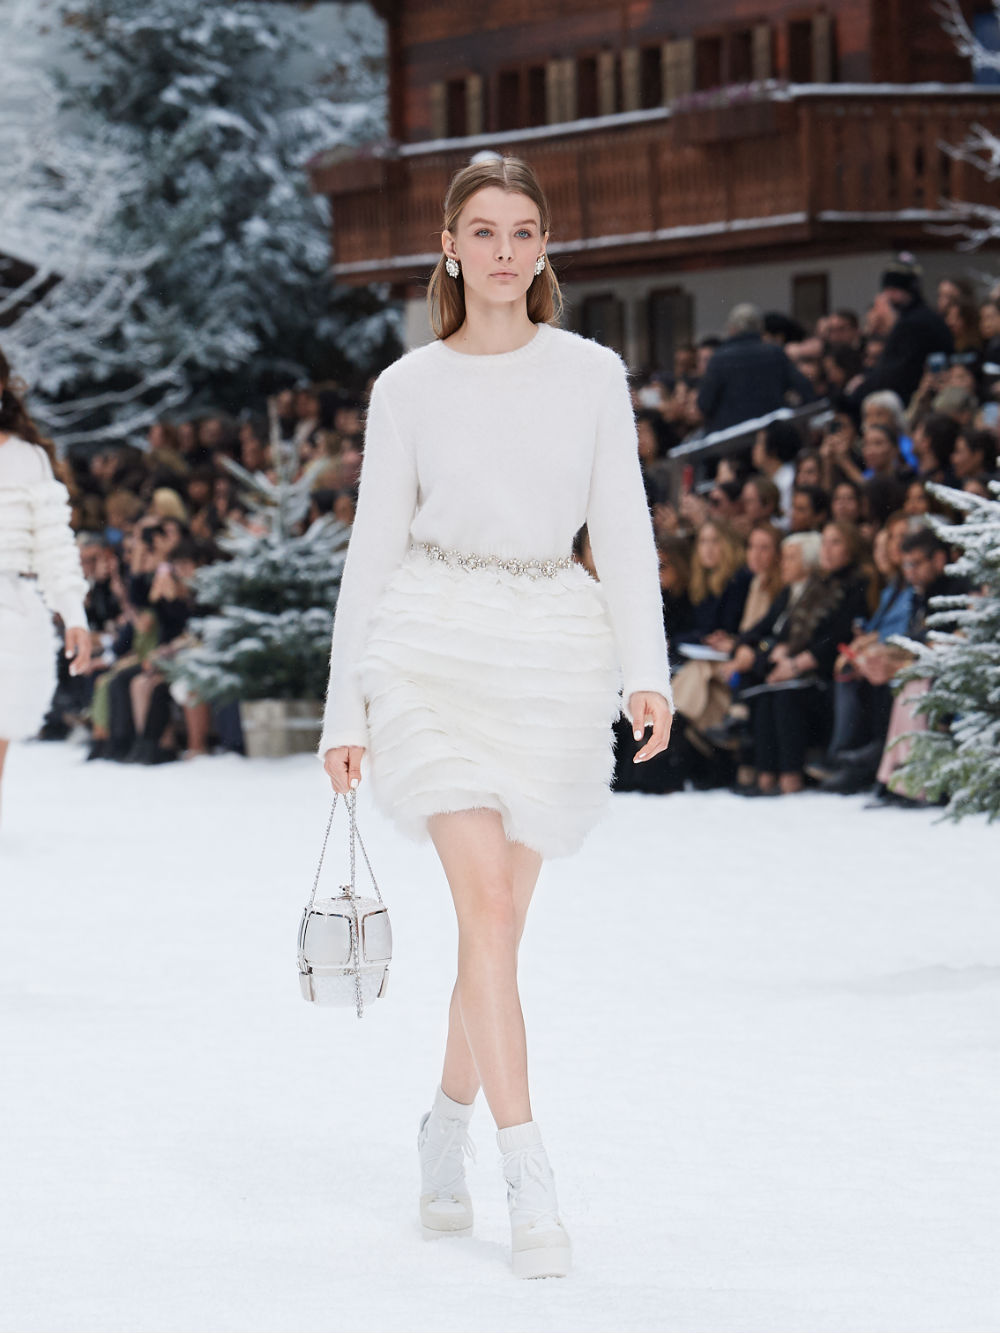 FALL-WINTER 201920 READY-TO-WEAR COLLECTION (49)